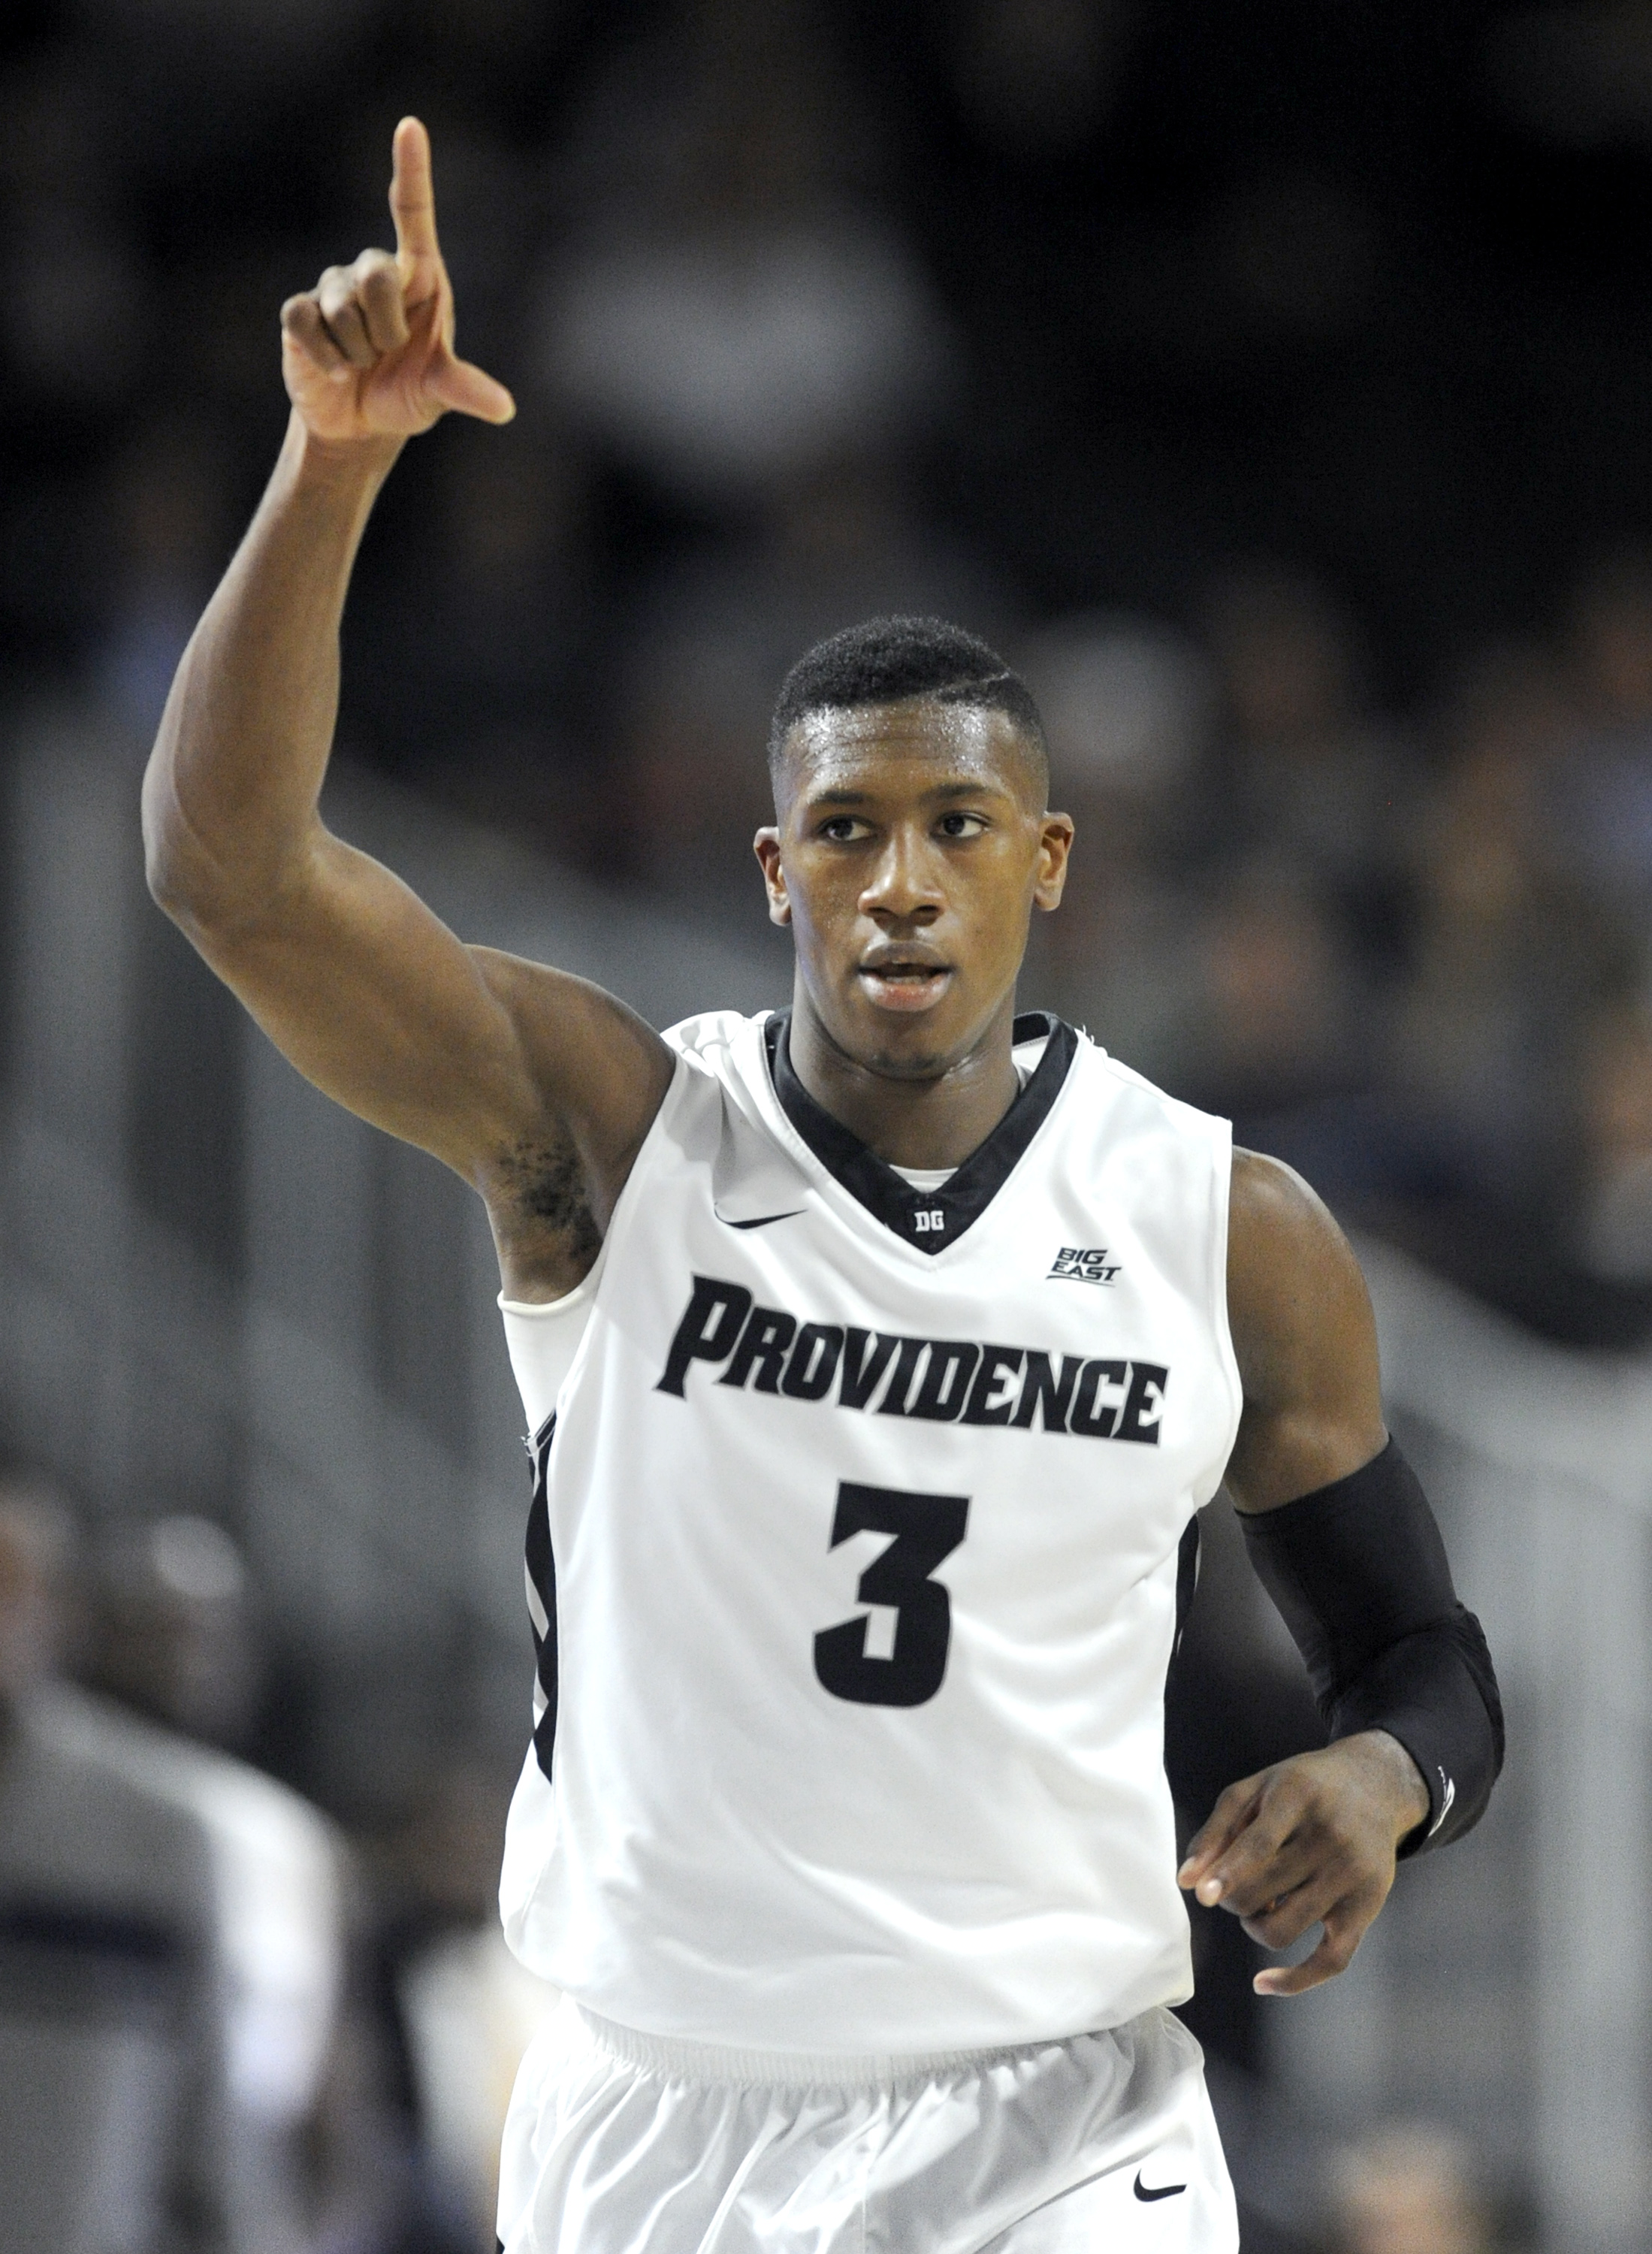 Providence guard Kris Dunn (3) celebrates getting a 3-point basket in the second half of an NCAA college basketball game against Hartford, Wednesday, Dec. 2, 2015, in Providence, R.I.  Providence won 89-66. (AP Photo/Gretchen Ertl)